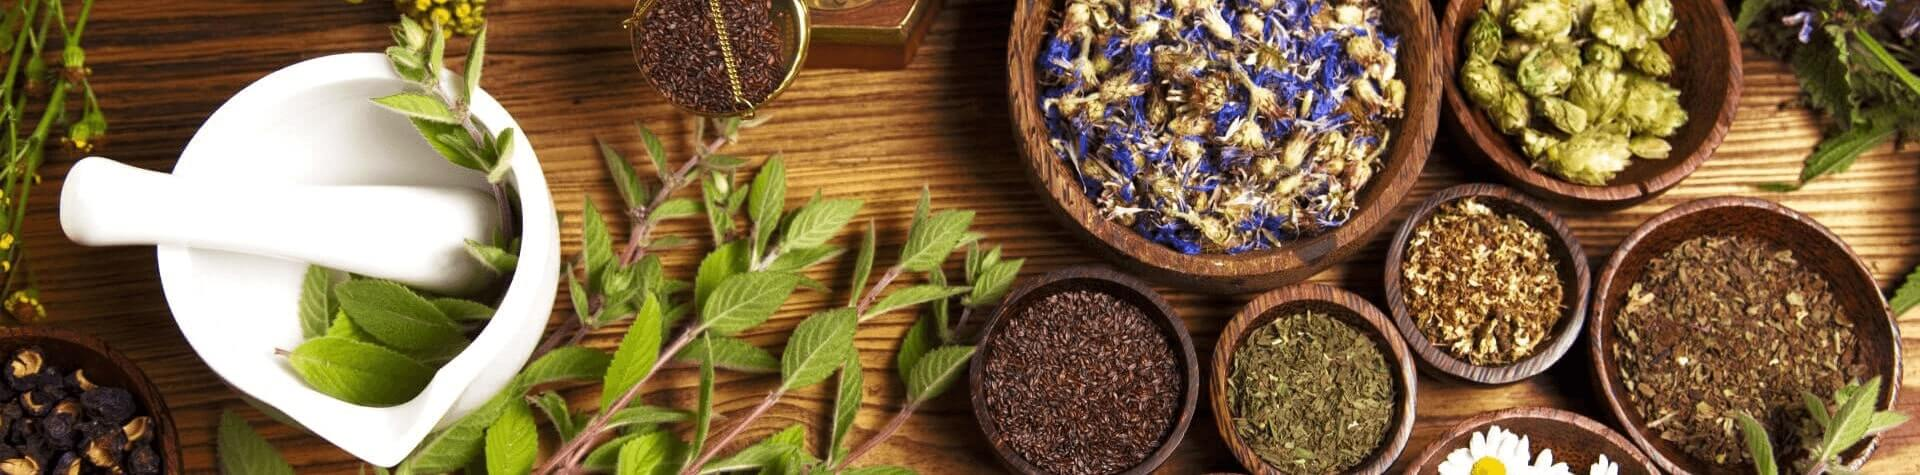 Natural teas of fruits and herbs